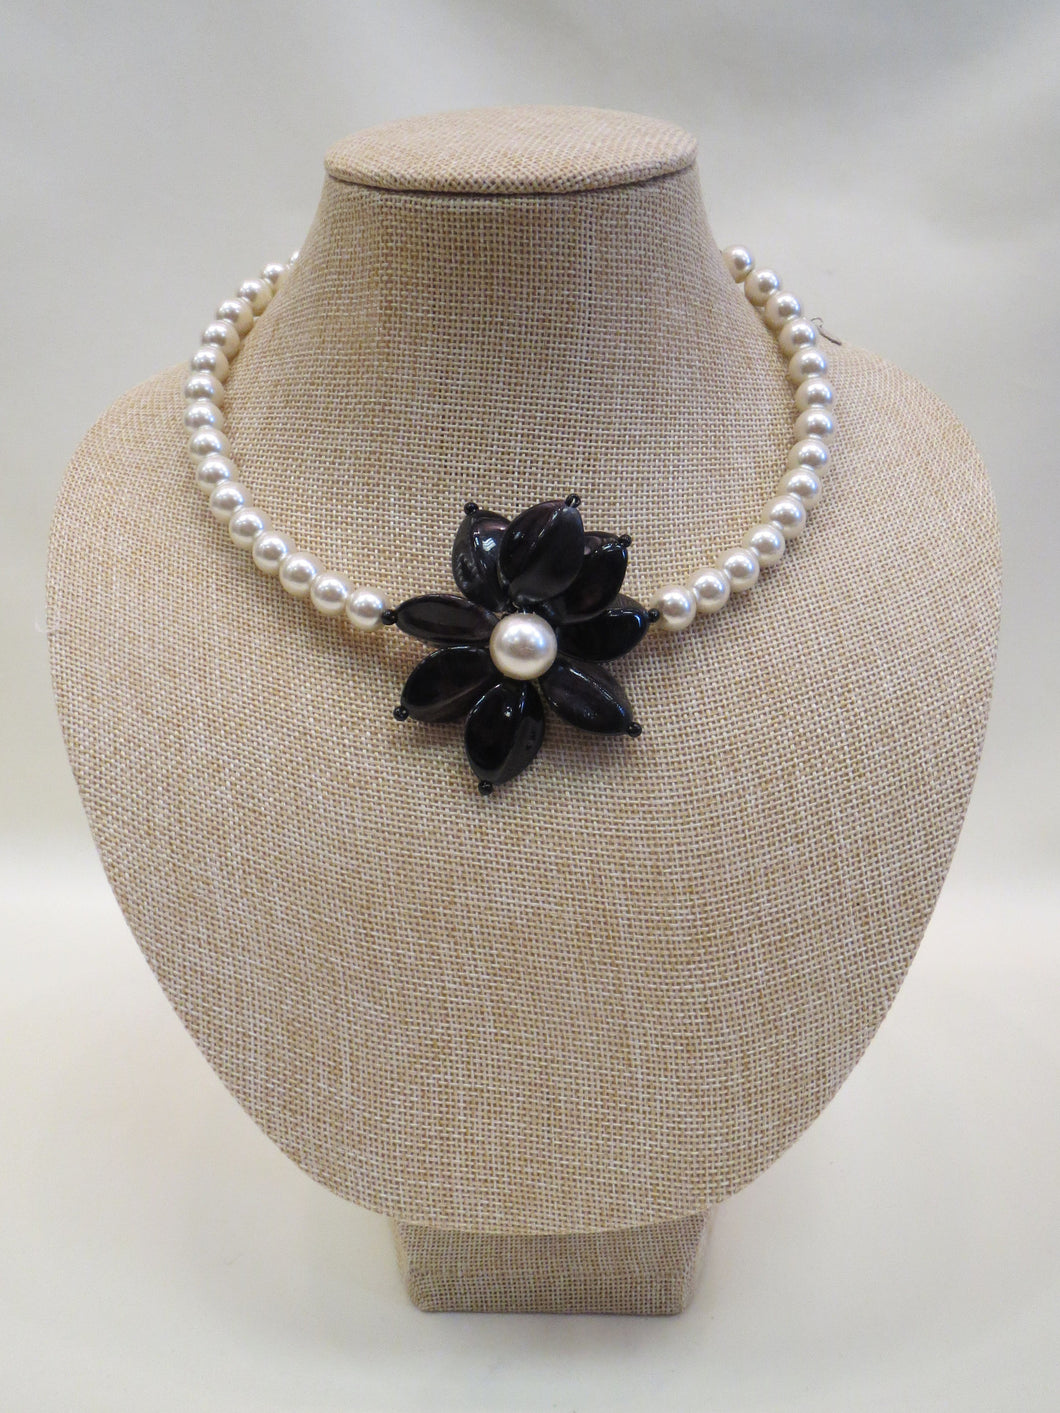 ADO Pearl Flower Necklace | All Dec'd Out